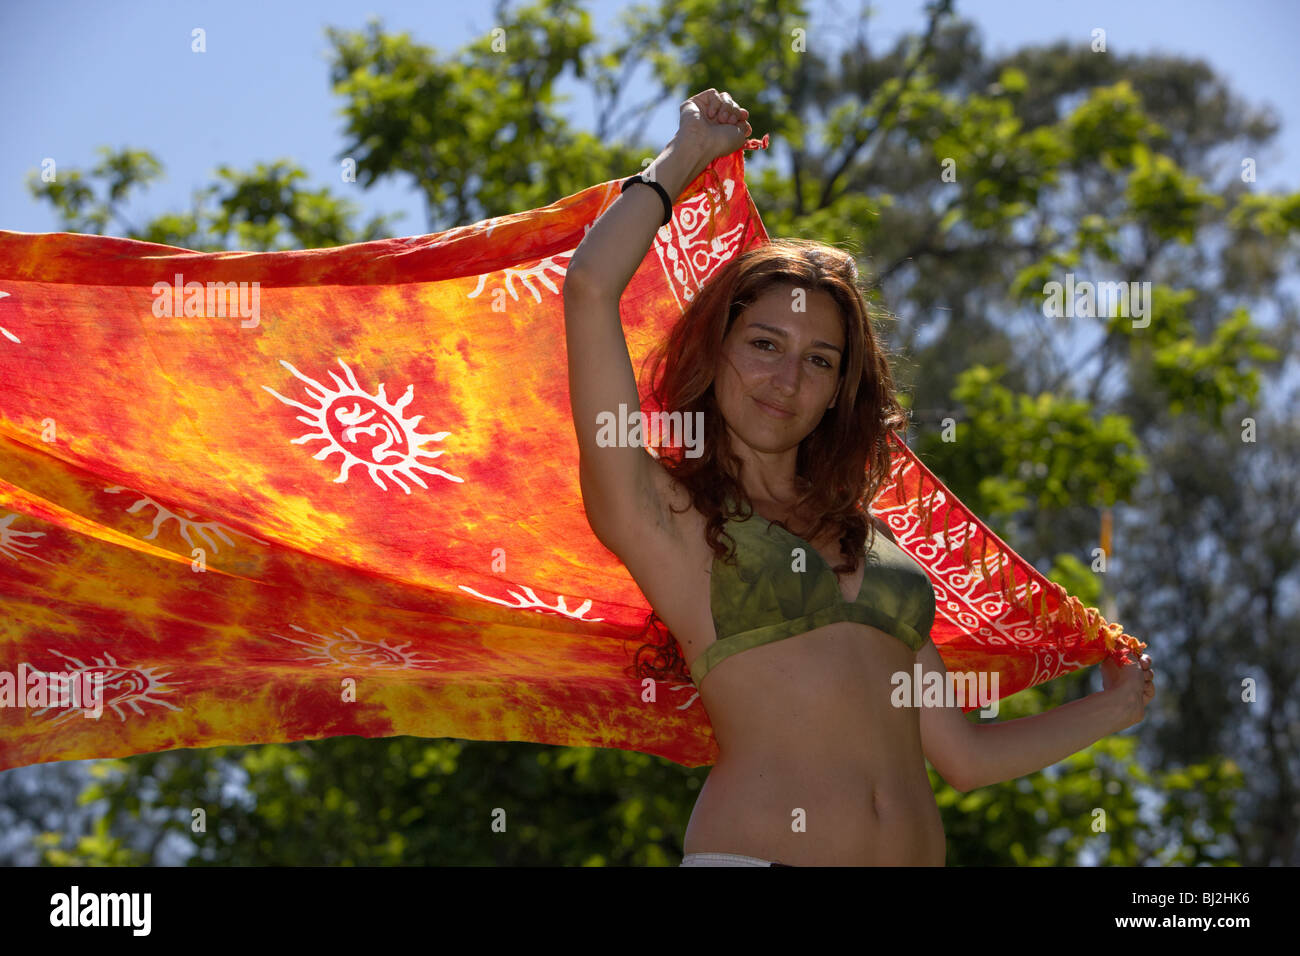 young hispanic latin woman putting a wrap over herself to shade from sunlight in the park in buenos aires argentina - Stock Image